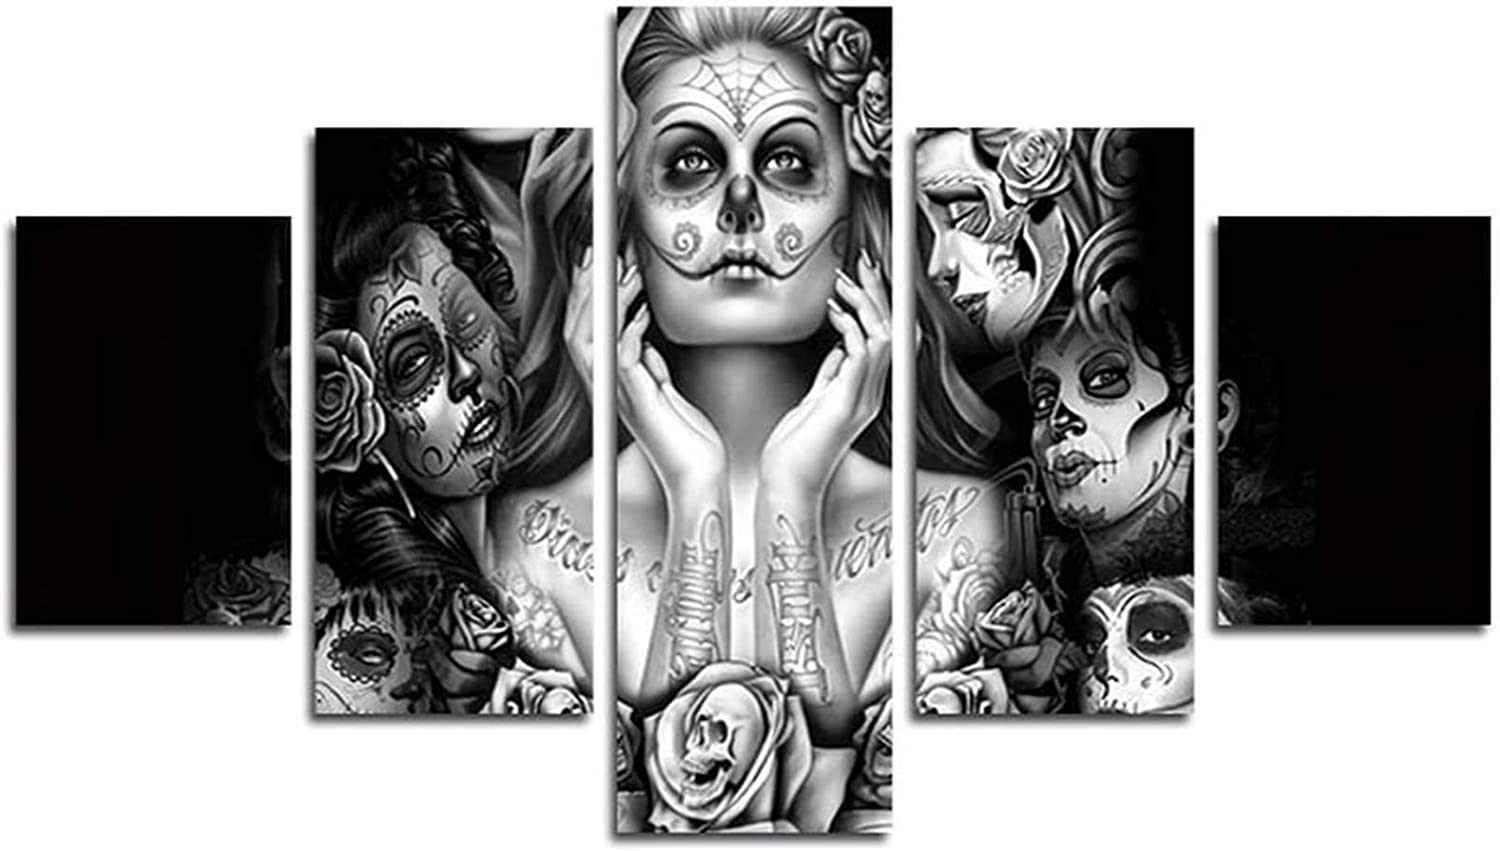 AtfArt 5 Piece NO Framed Canvas Painting Picture Sugar Skull Modern Decor Art Wall Art Canvas Print Home Bedroom Decoration (Unframed) for 249 50 inch x30 inch